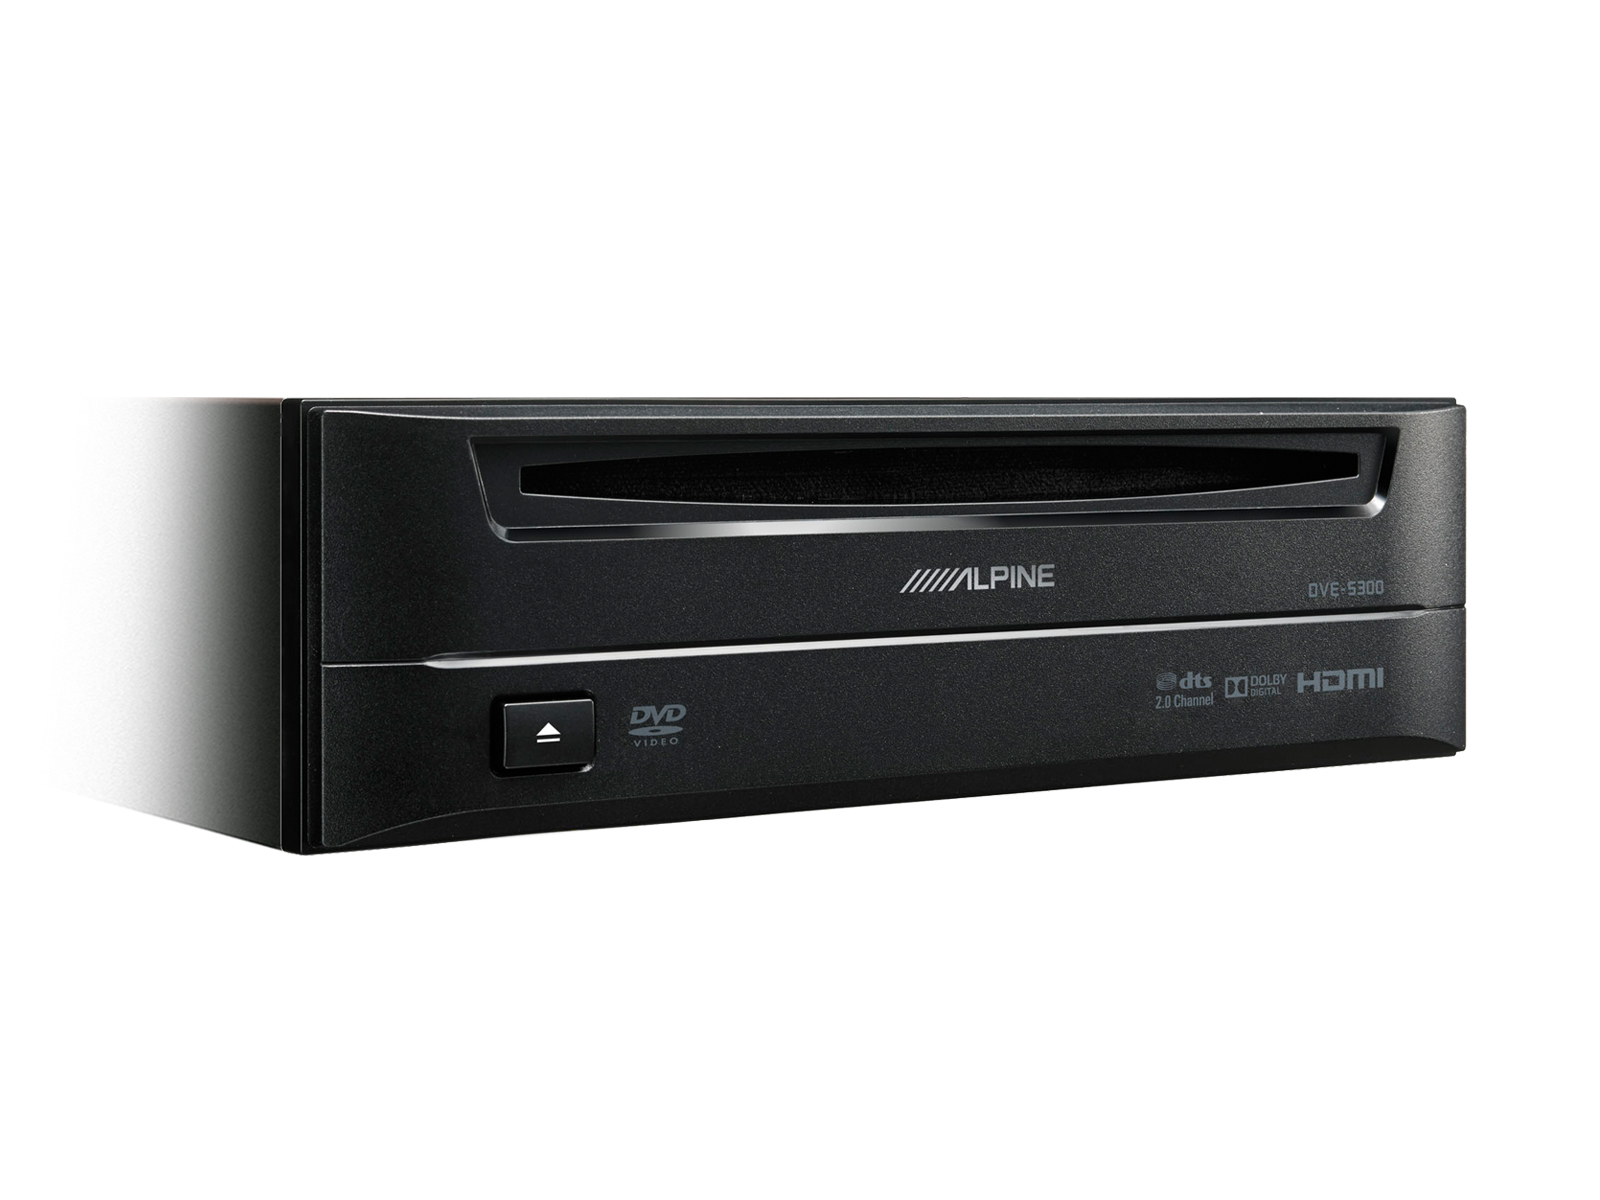 External Dvd Player Alpine Dve 5300 Wiring Diagrams Chevy 2013